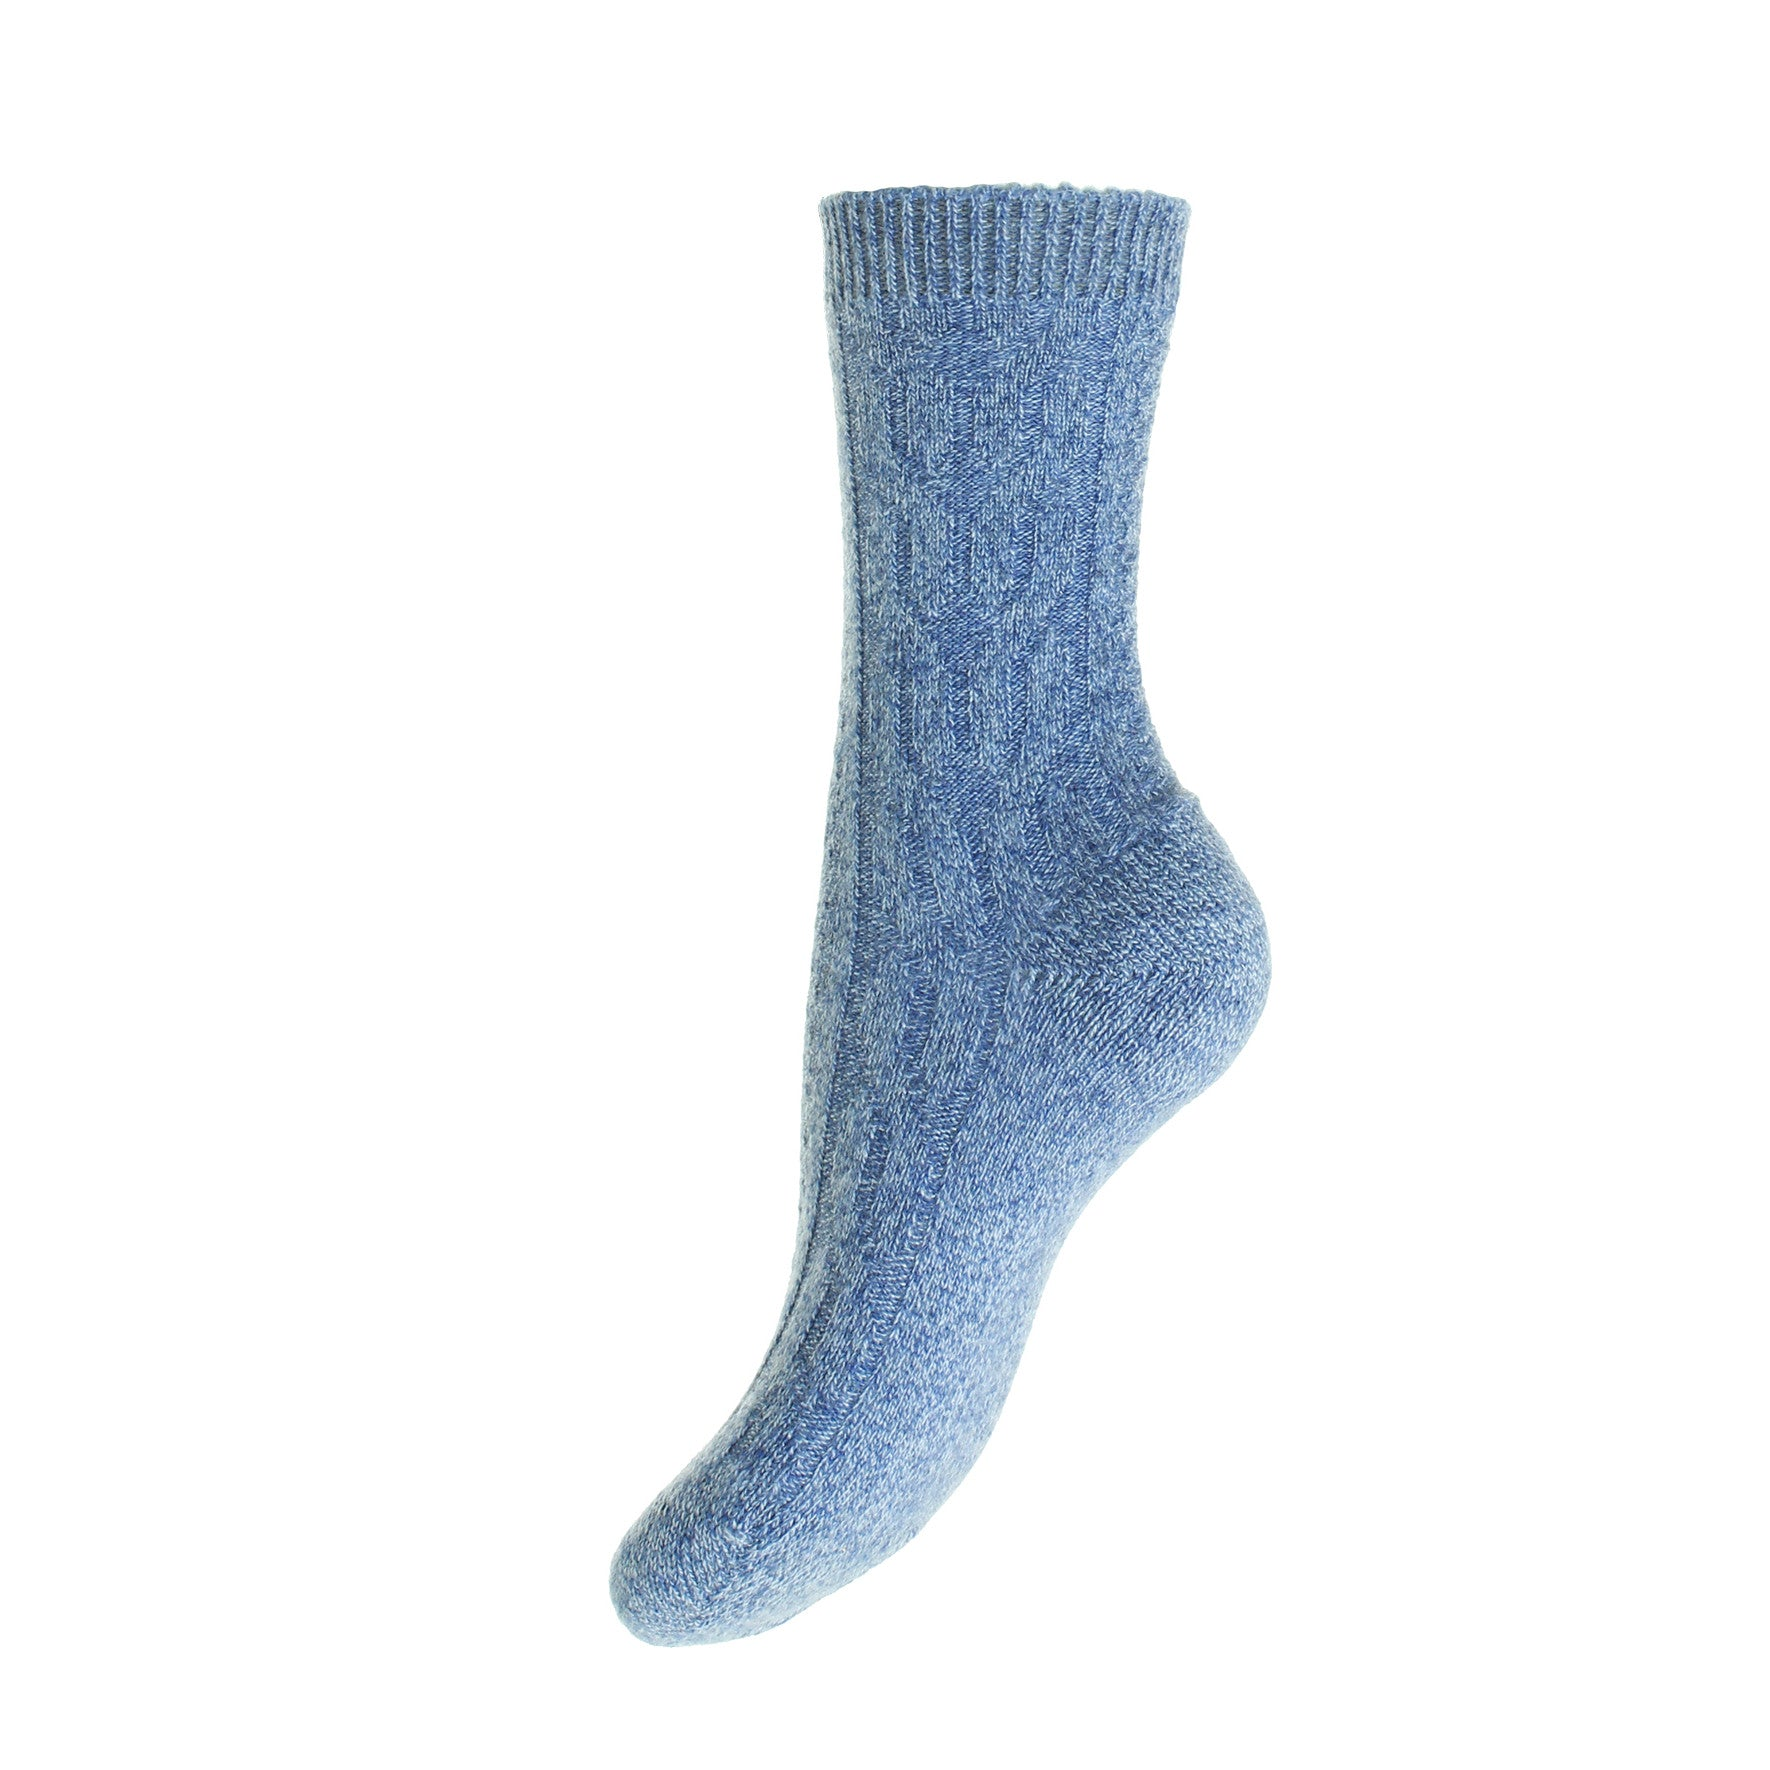 0a7a6cf0d ... Blue Cable Knit Ladies Cashmere Socks | Ankle Sock | buy now at The  Cashmere Choice ...